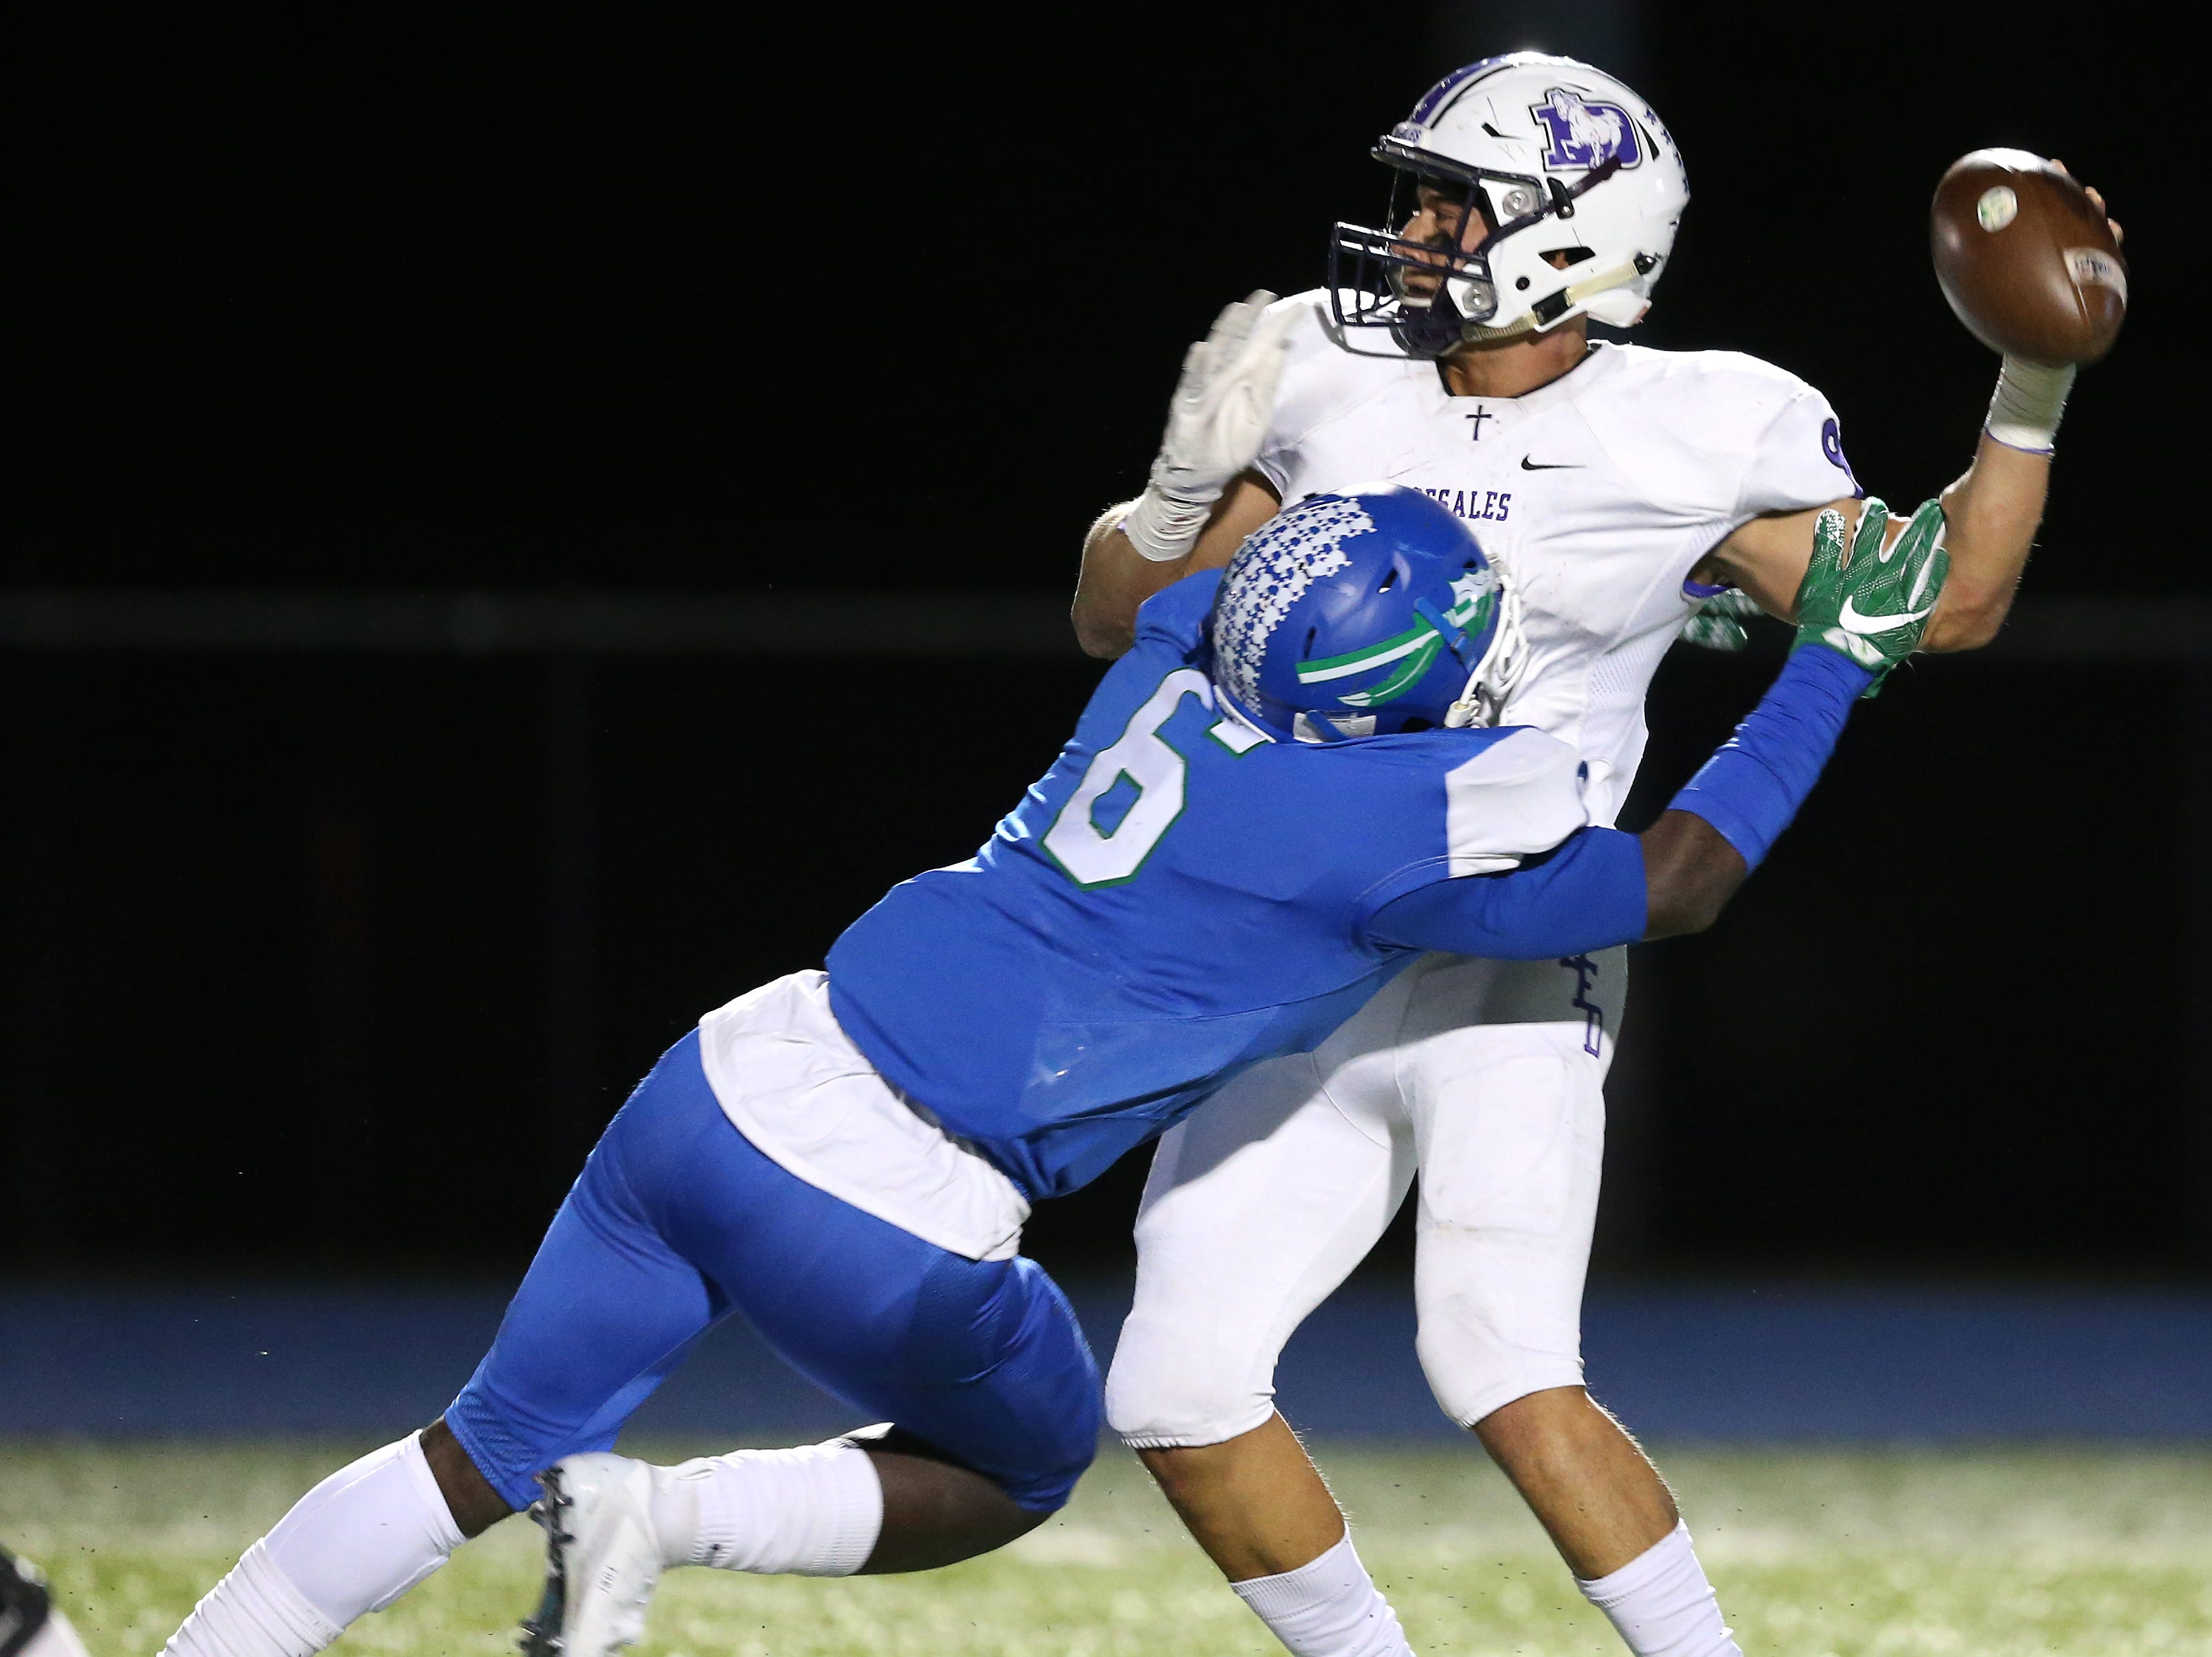 Winton Woods Warriors linebacker Waseem Ficklin (6) pressures St. Francis de Sales Stallions quarterback Joey Velazquez (9) in the second quarter during a high school football game between St. Francis de Sales and Winton Woods, Friday, Oct. 19, 2018, at Winton Woods High School in Forest Park, Ohio.